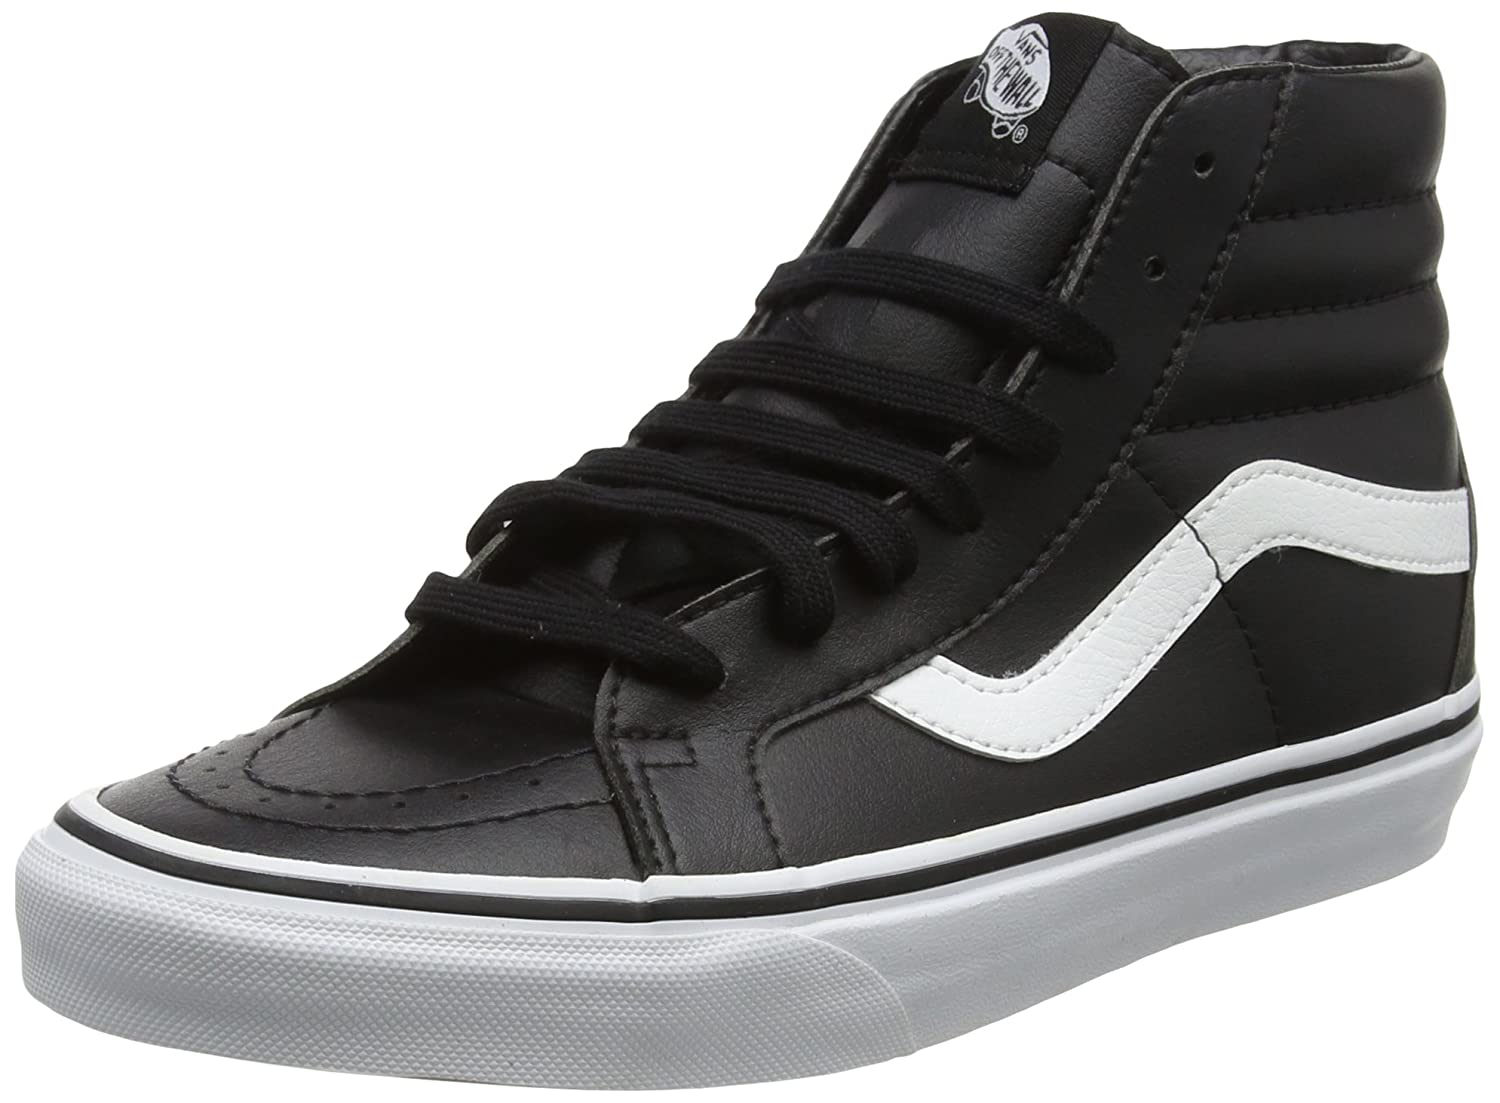 VANS MENS SK8 HI REISSUE LEATHER SHOES B01N0Q3Z9F 12 D(M) US|Black